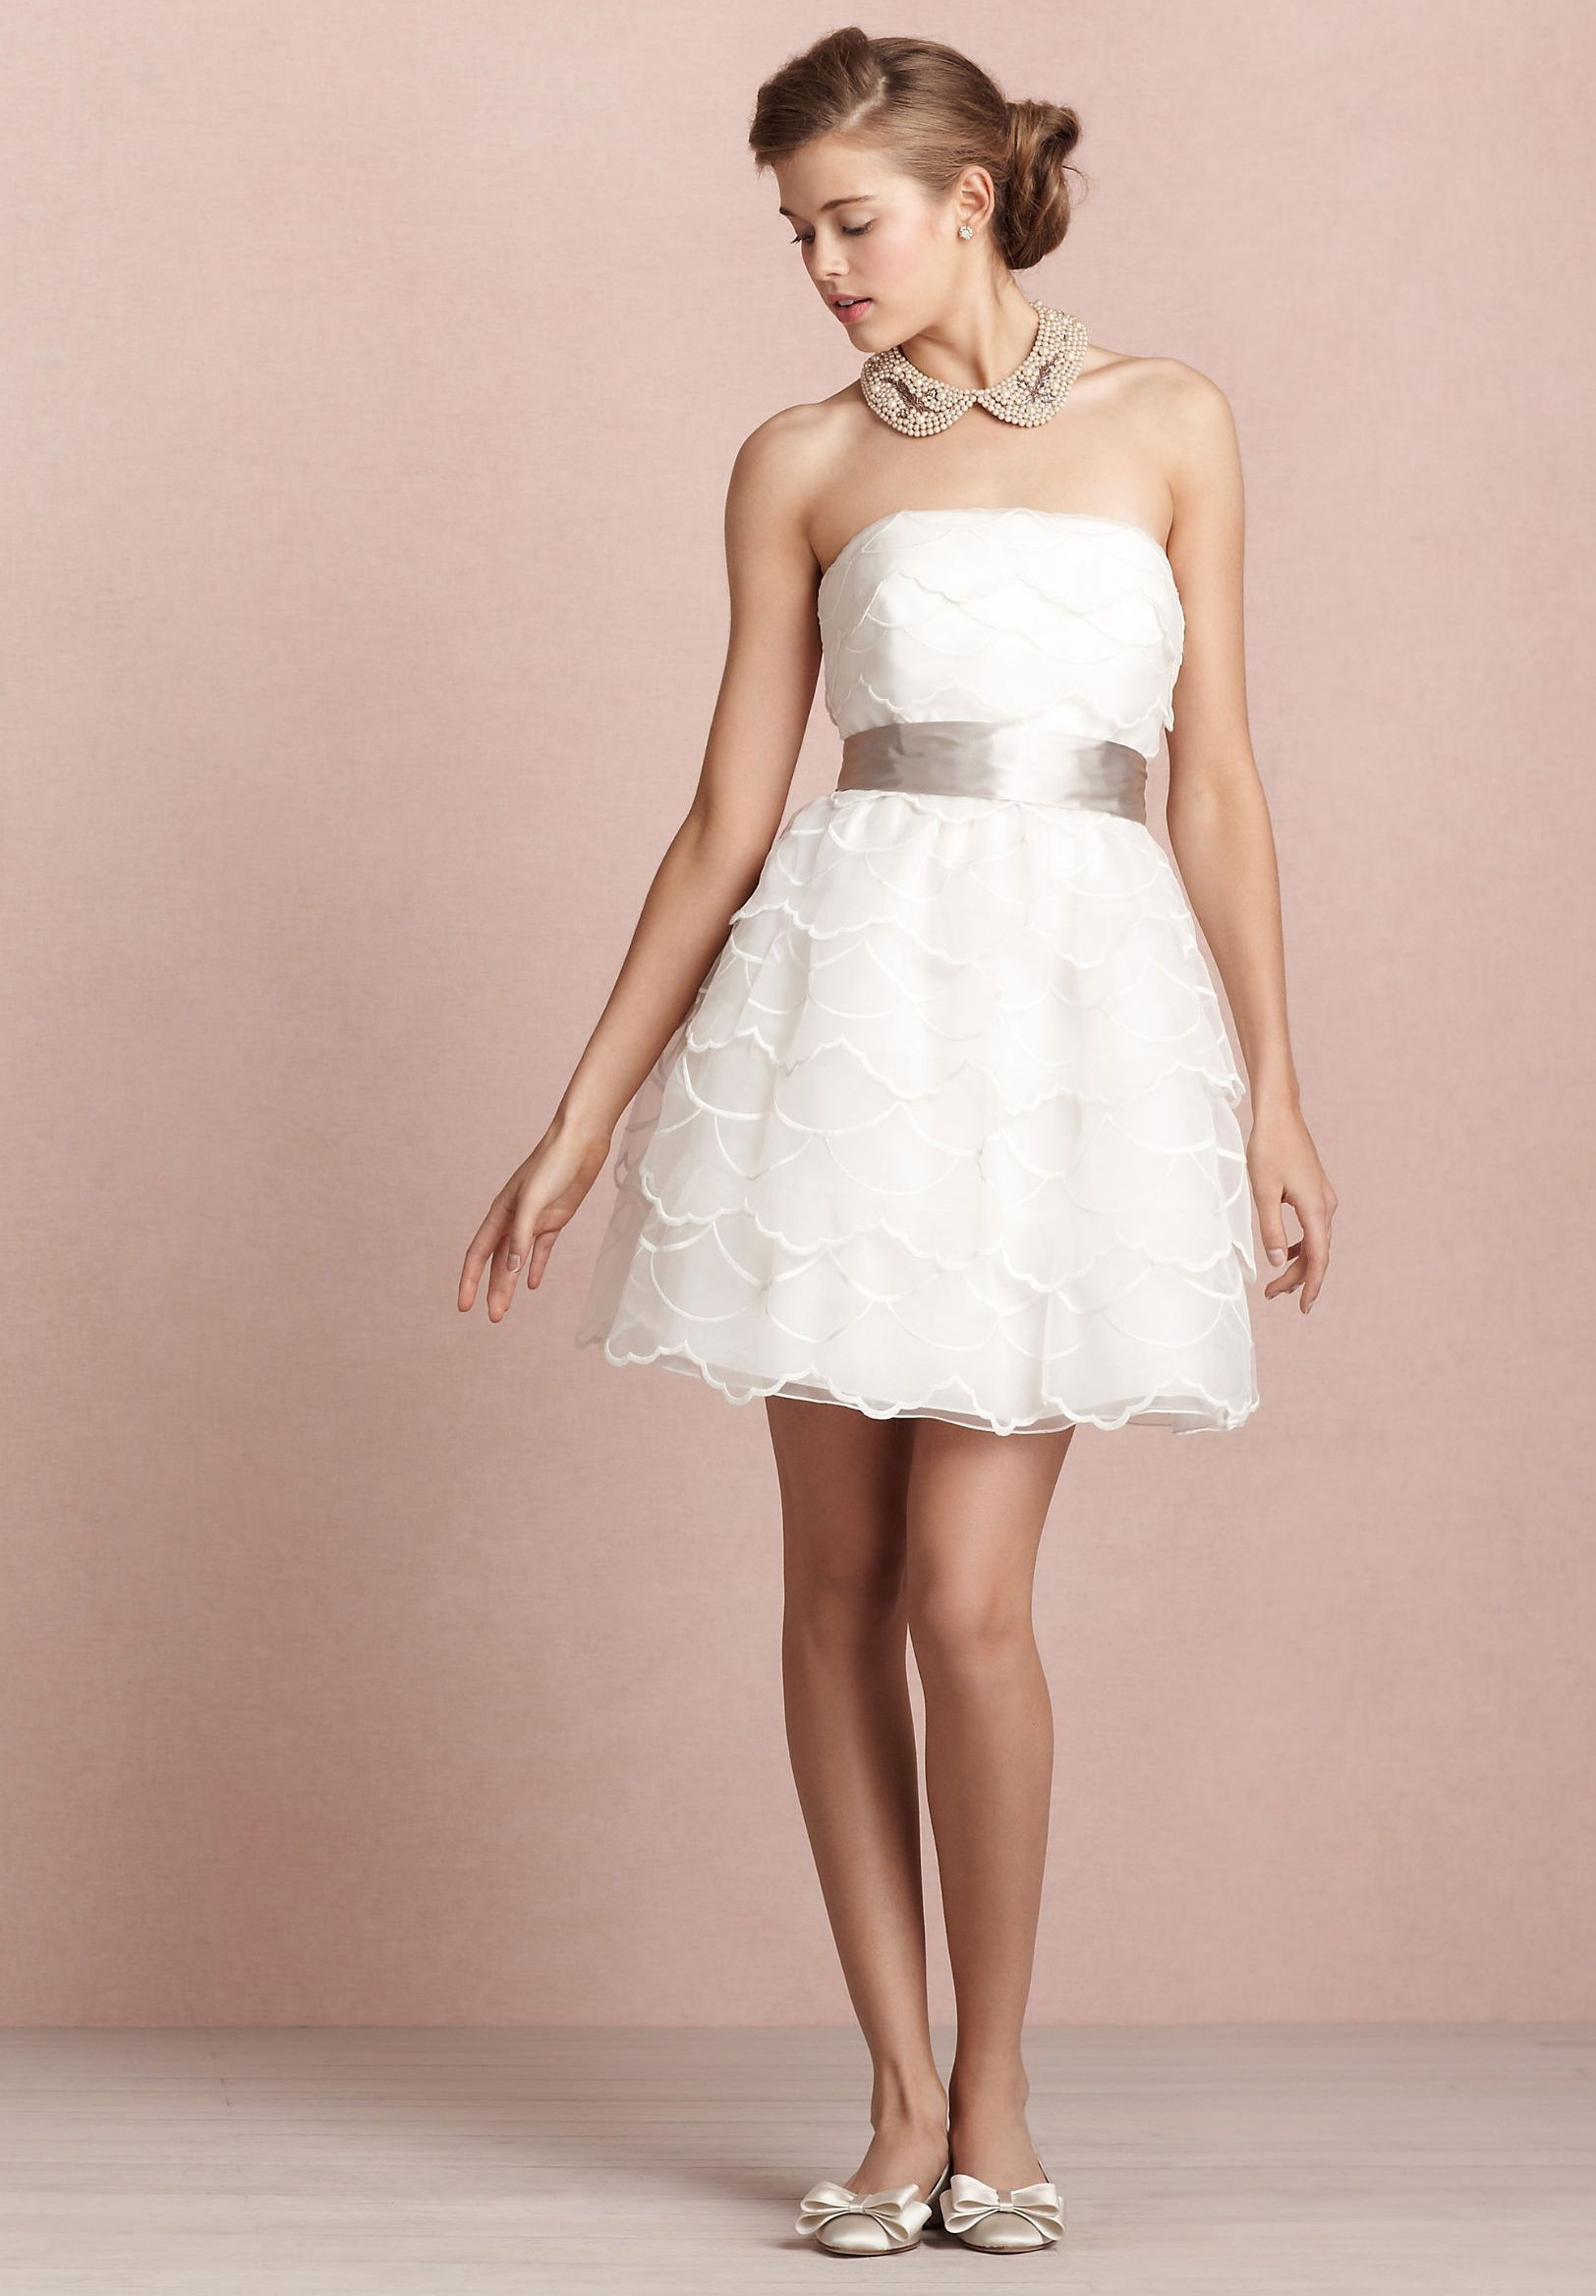 30 Gorgeous Reception Dress For The Bride To Be